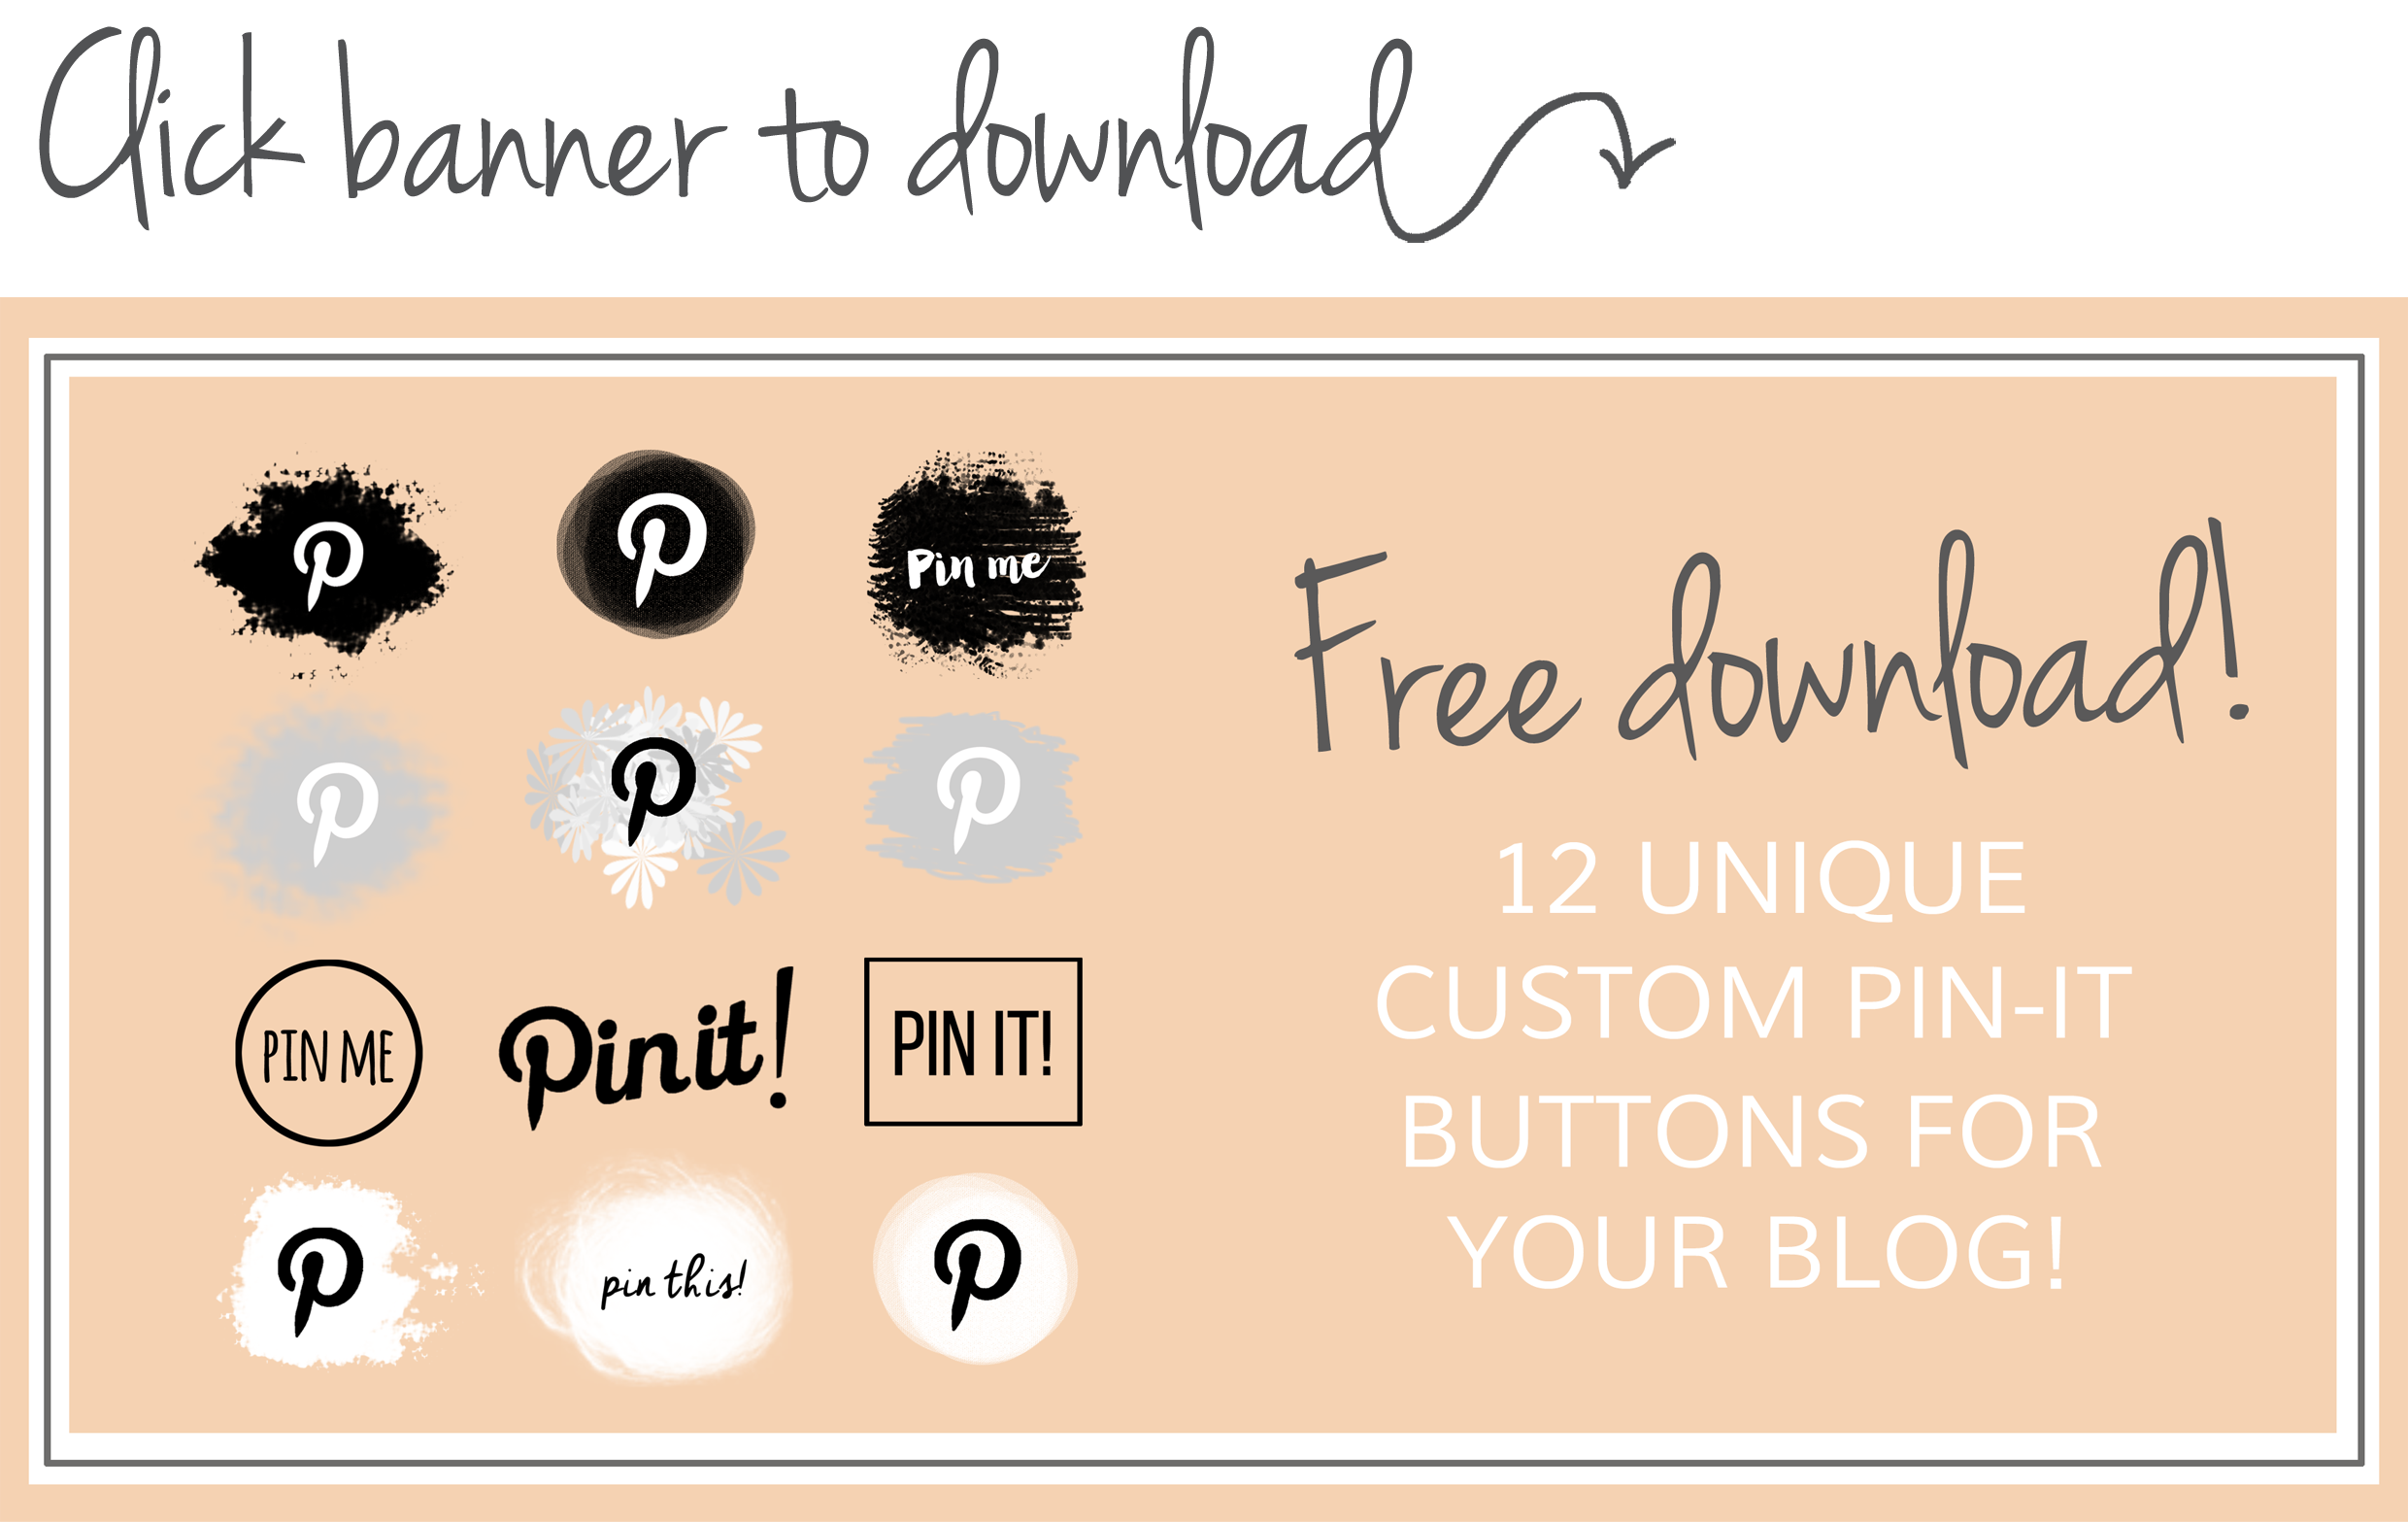 >>FREE Pinterest pin-it buttons<< How to easily add a custom Pinterest pin-it button to your blog on Squarespace or Wordpress!